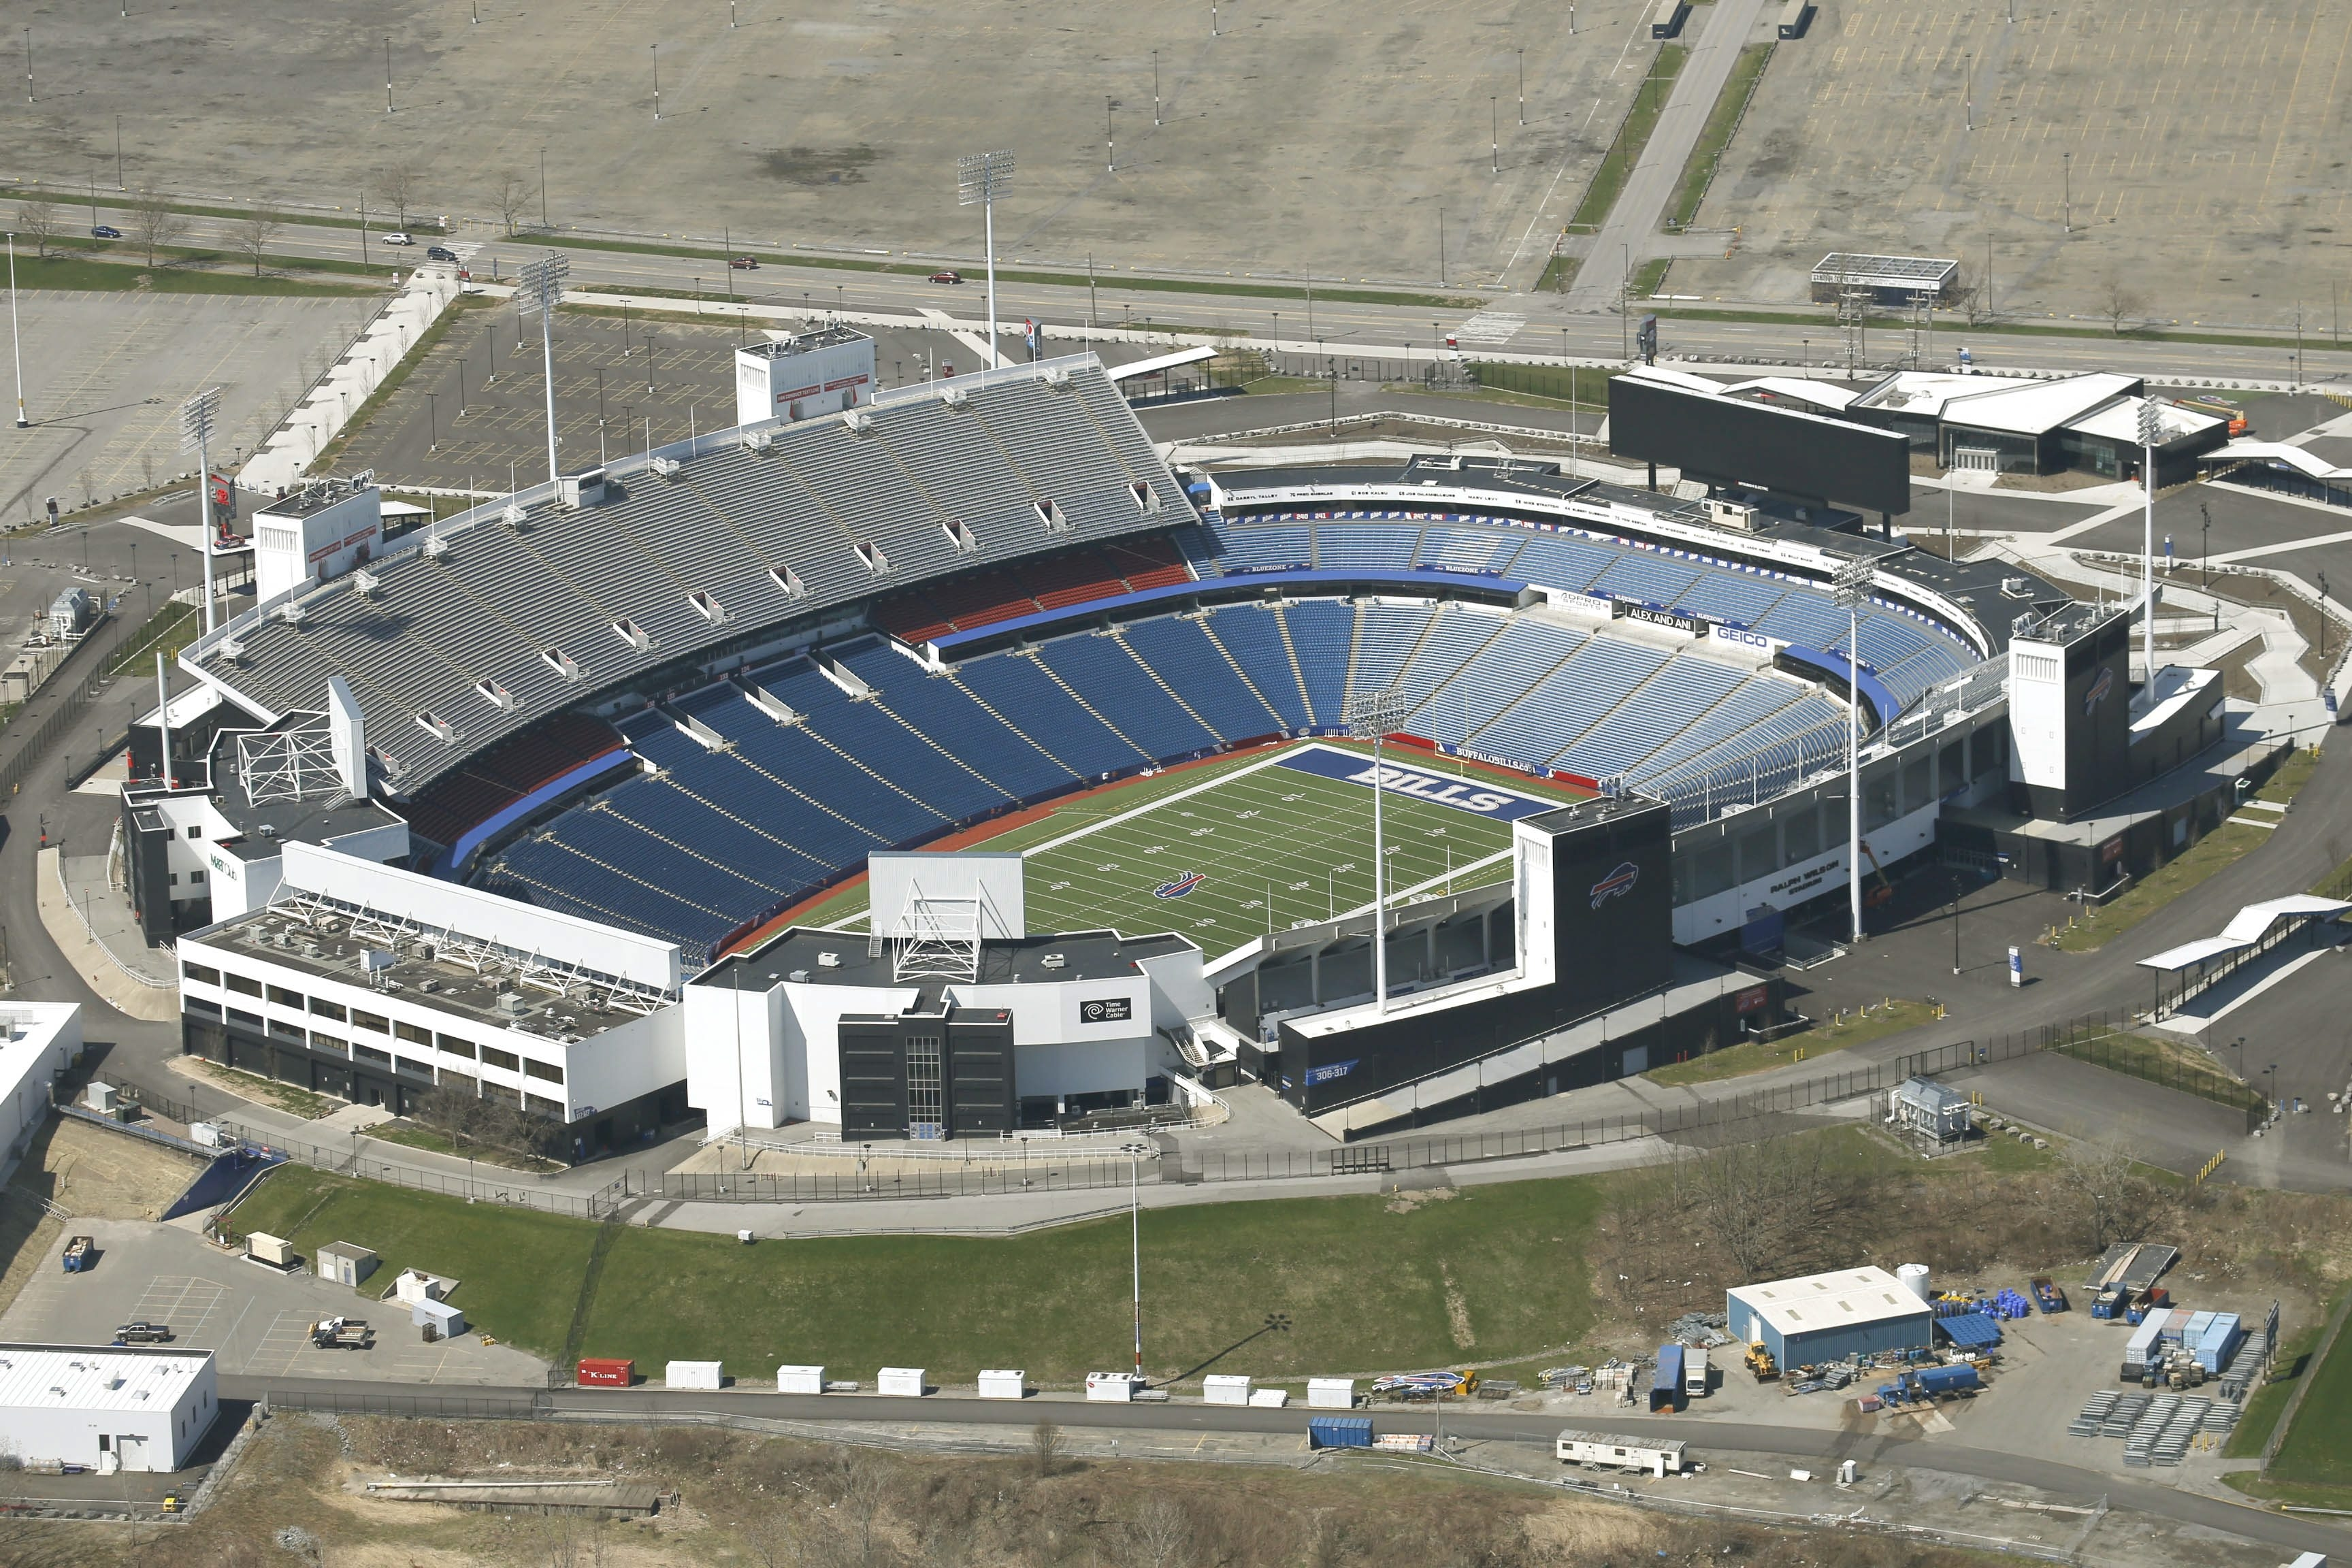 Ralph Wilson Stadium opened in 1973 and should be functional for a good number of years to come.